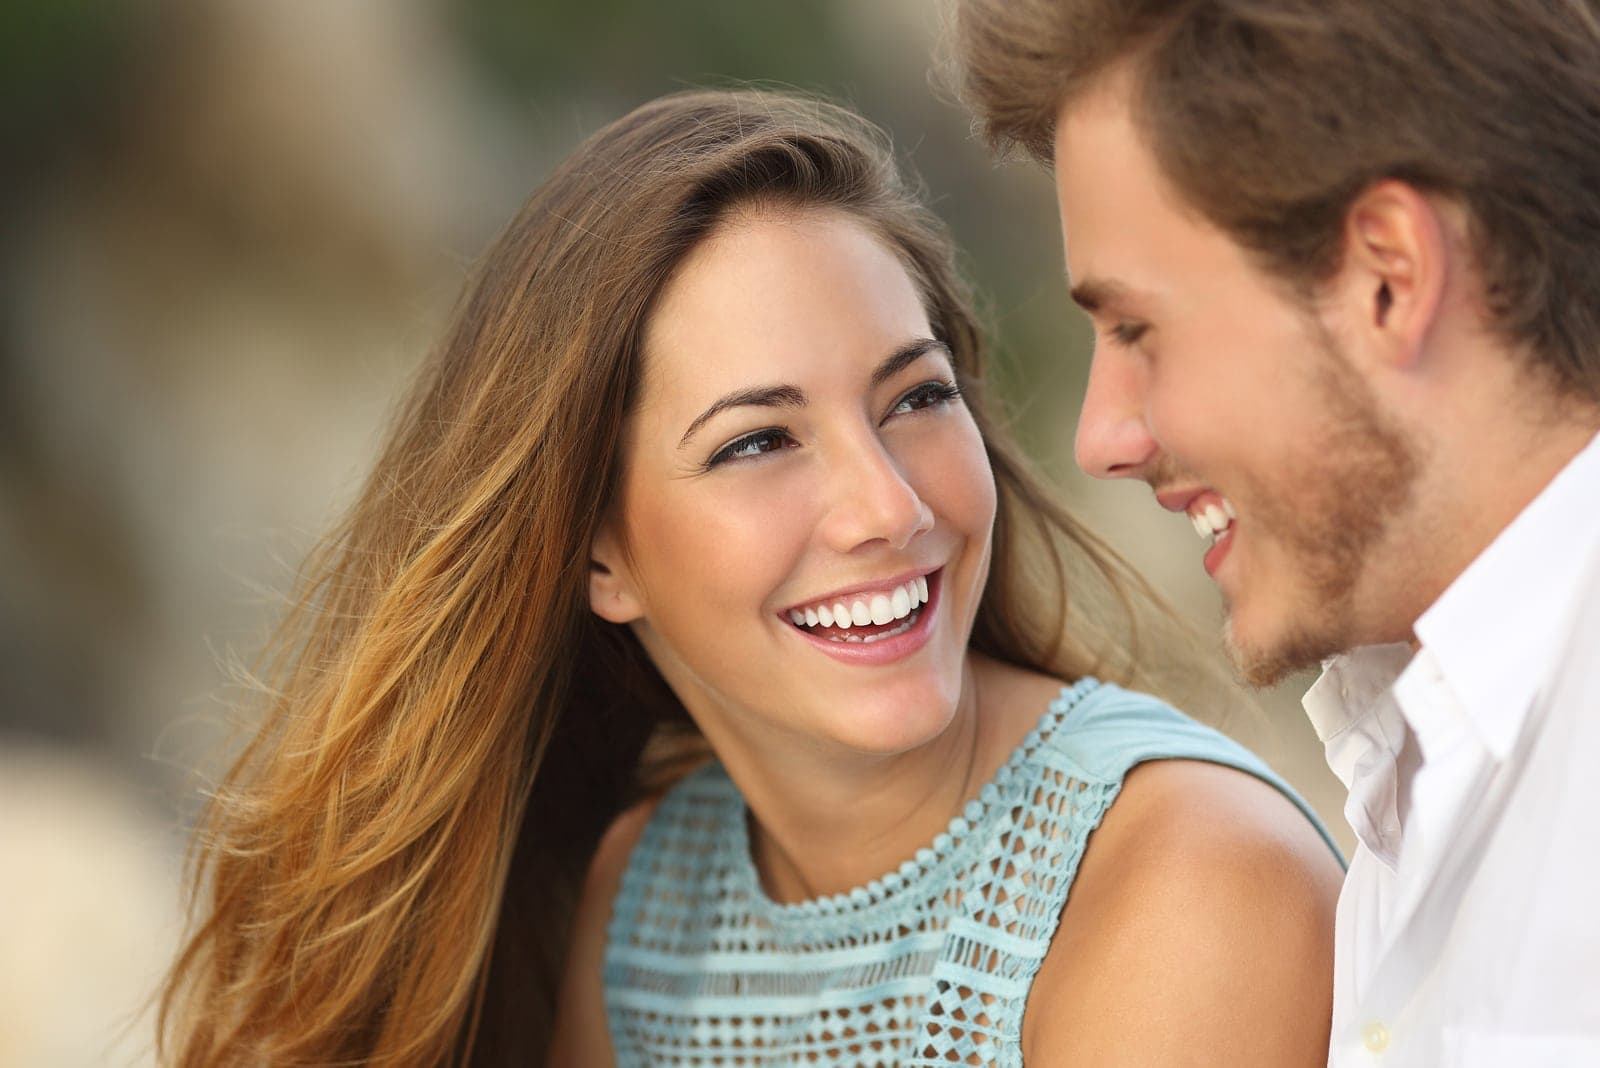 couple looking into eyes while laughing